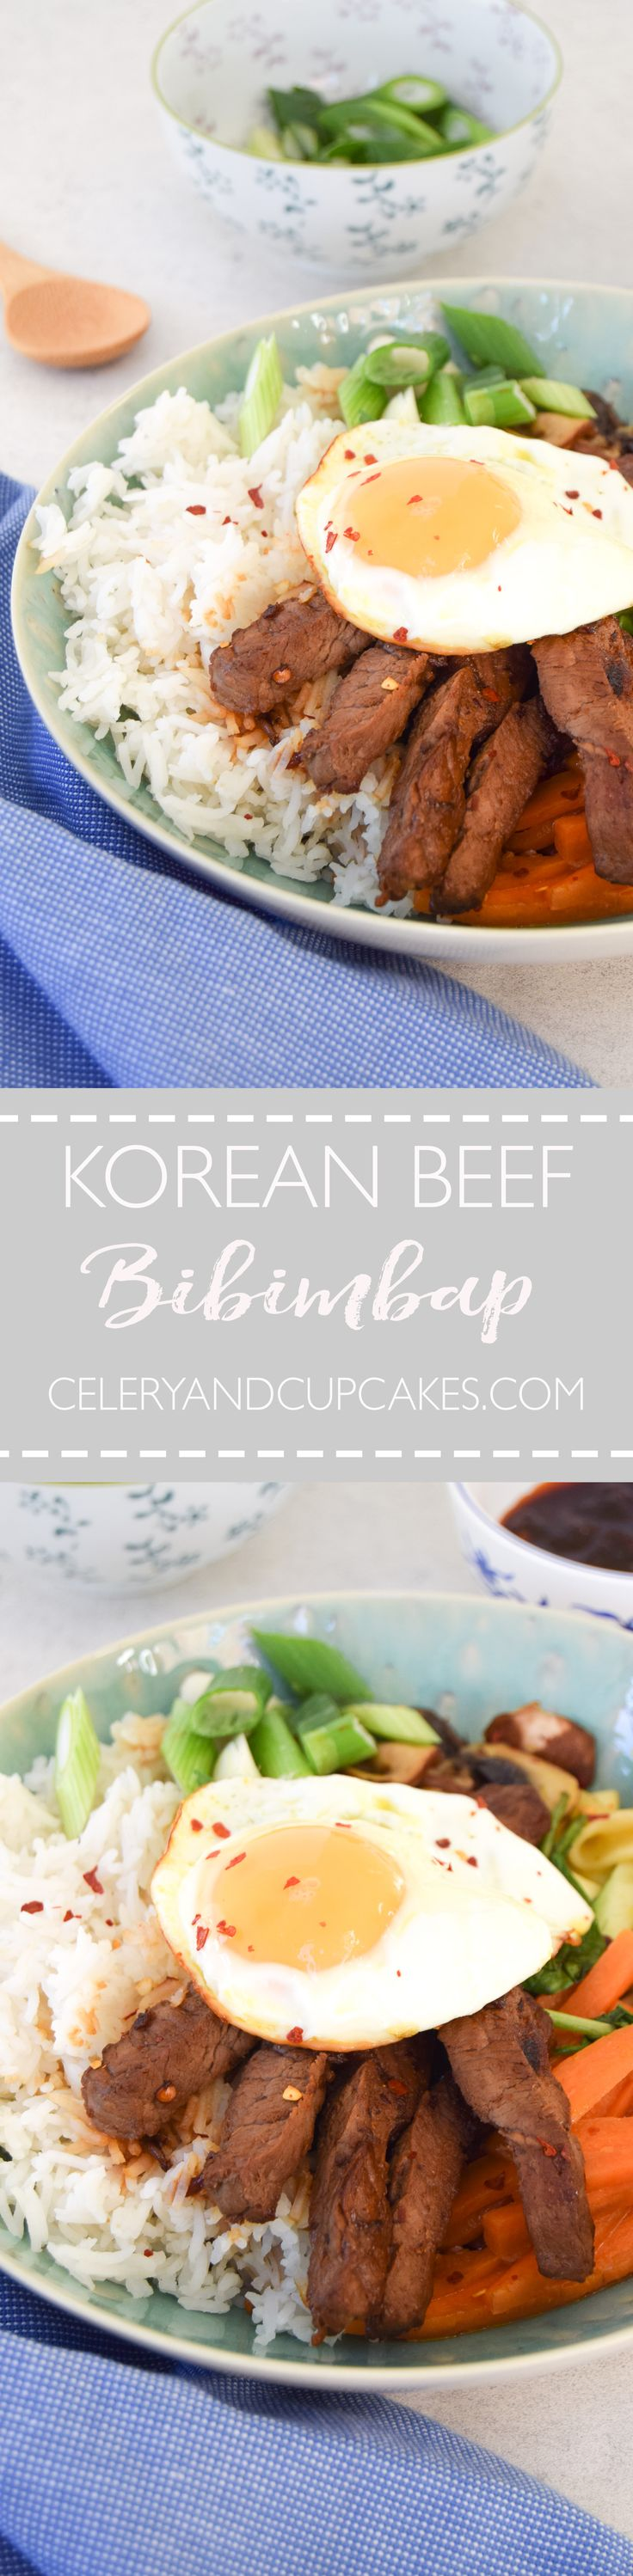 288 best vegan korean food images on pinterest cooking food a popular korean dish with lots of beautiful vegetables and protein forumfinder Image collections